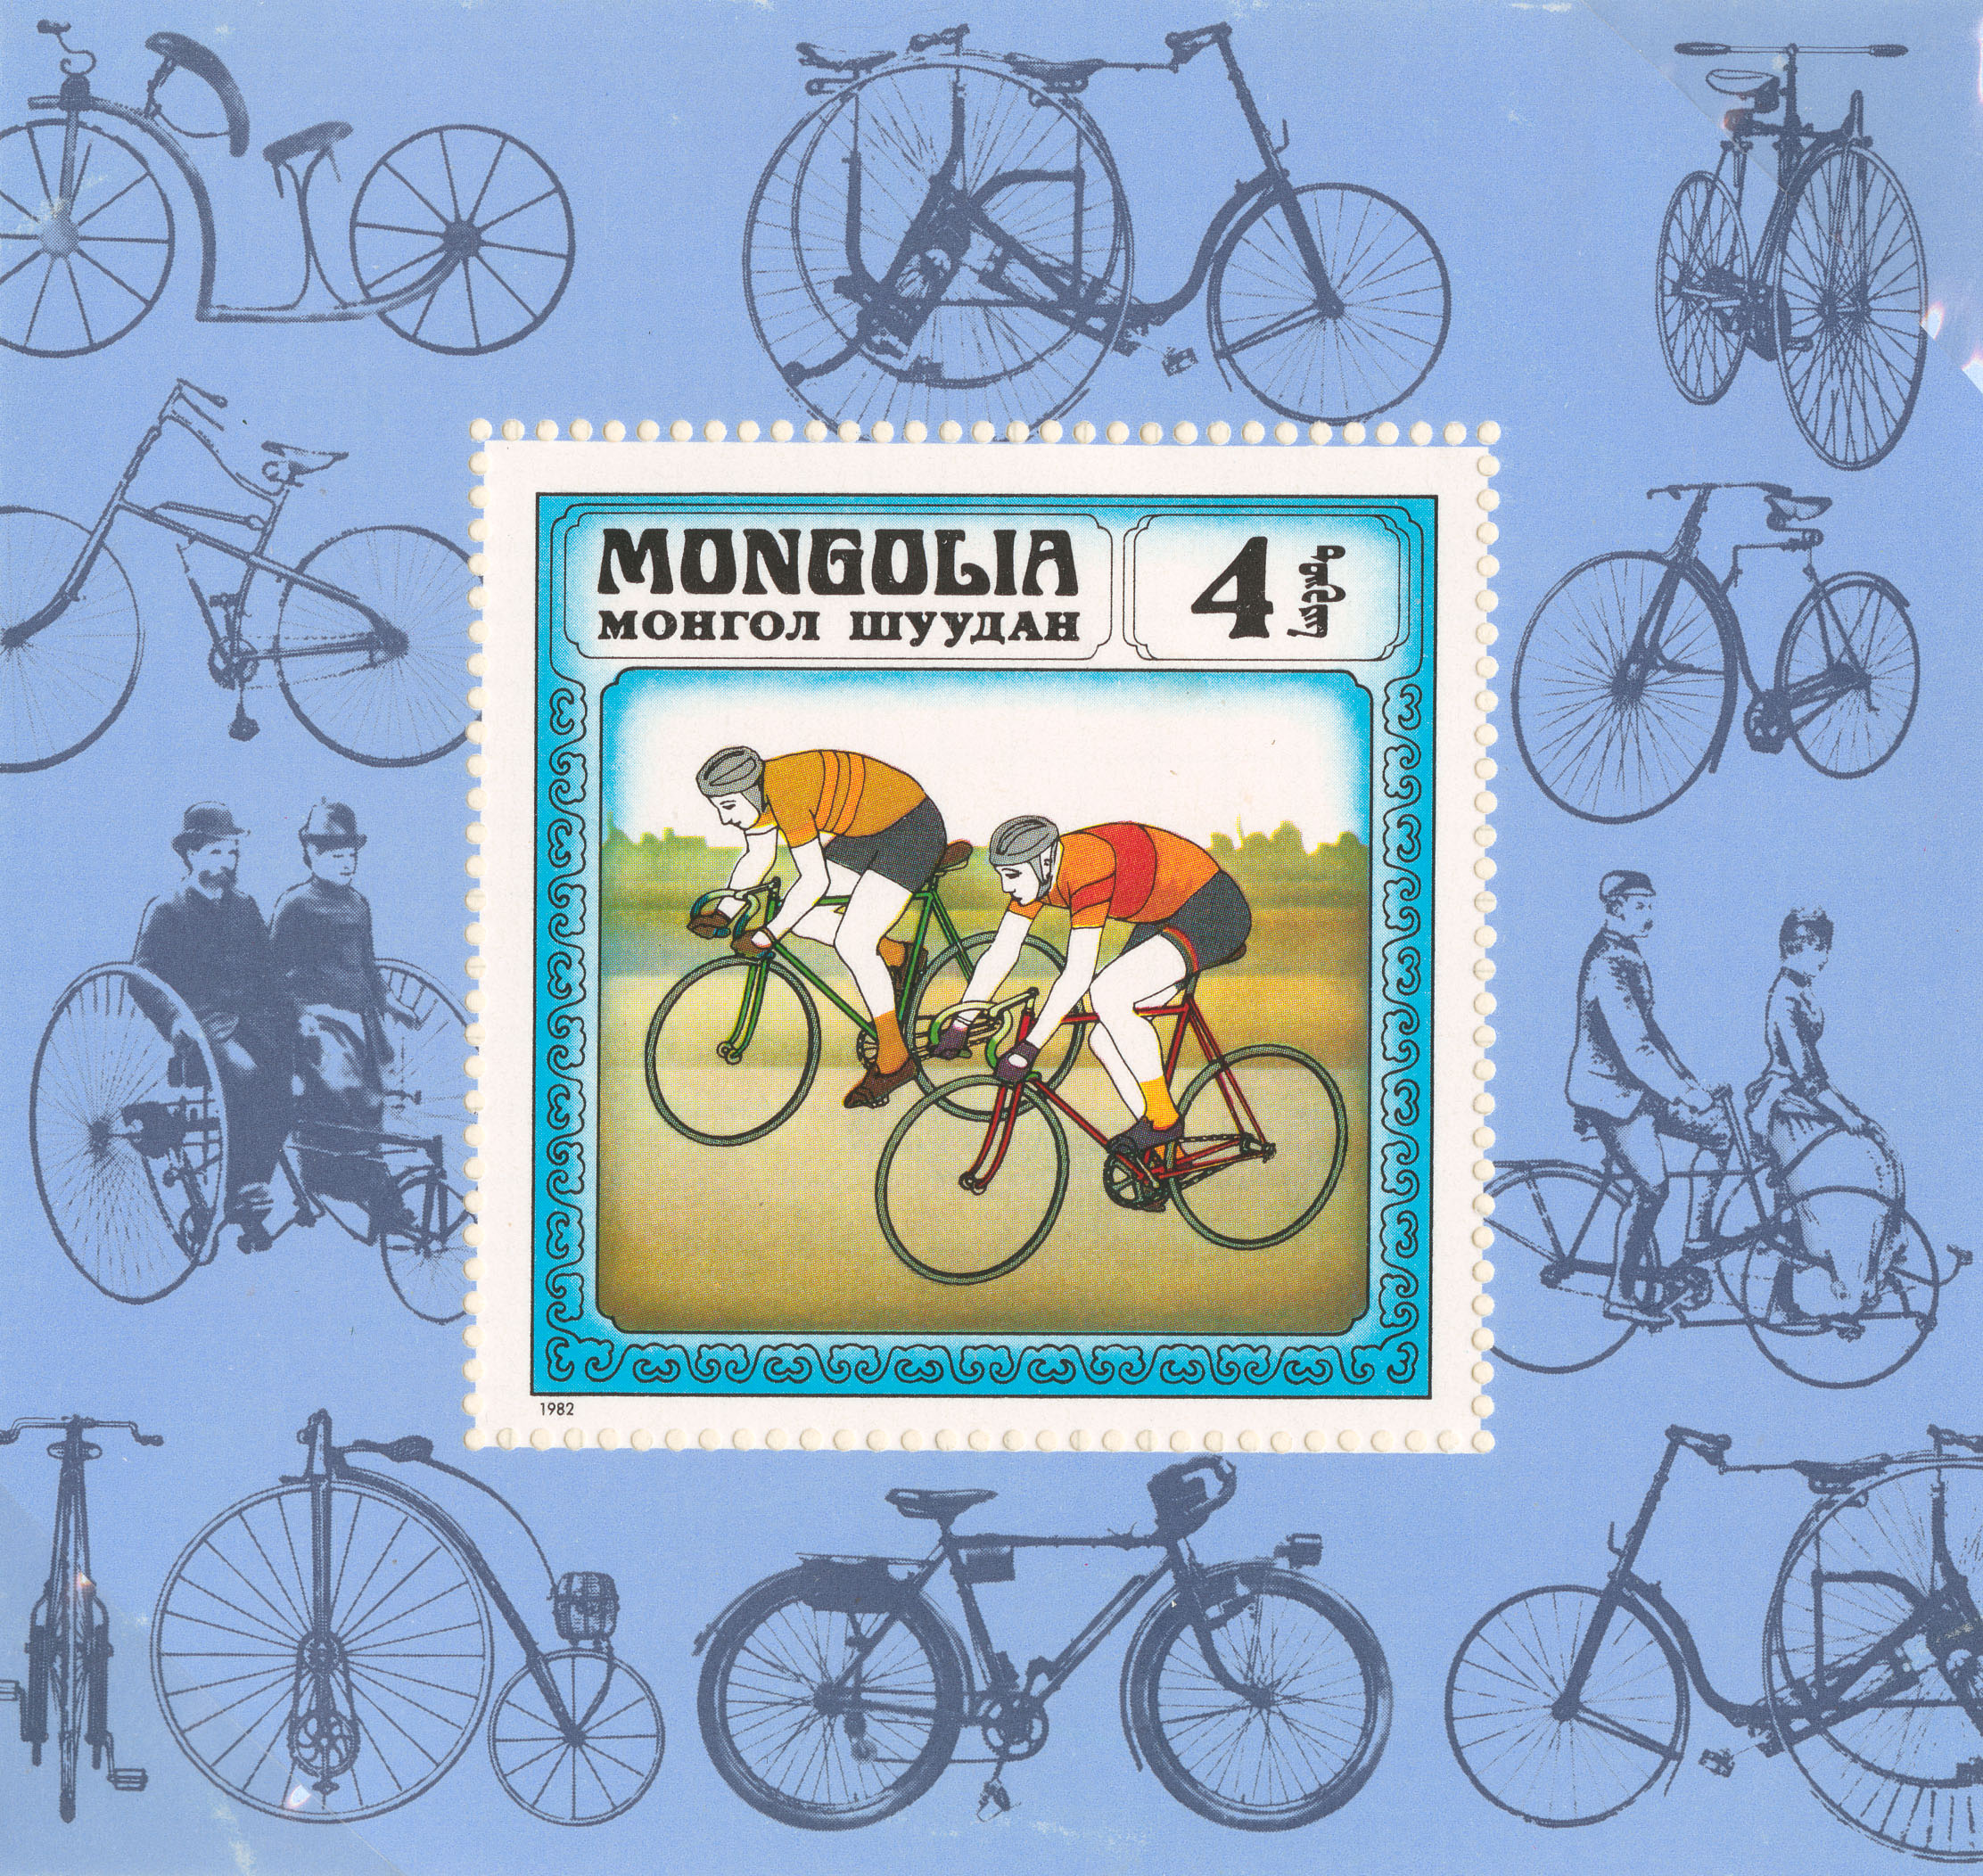 Stamp depicting two cyclists on bikes with striped outfits.